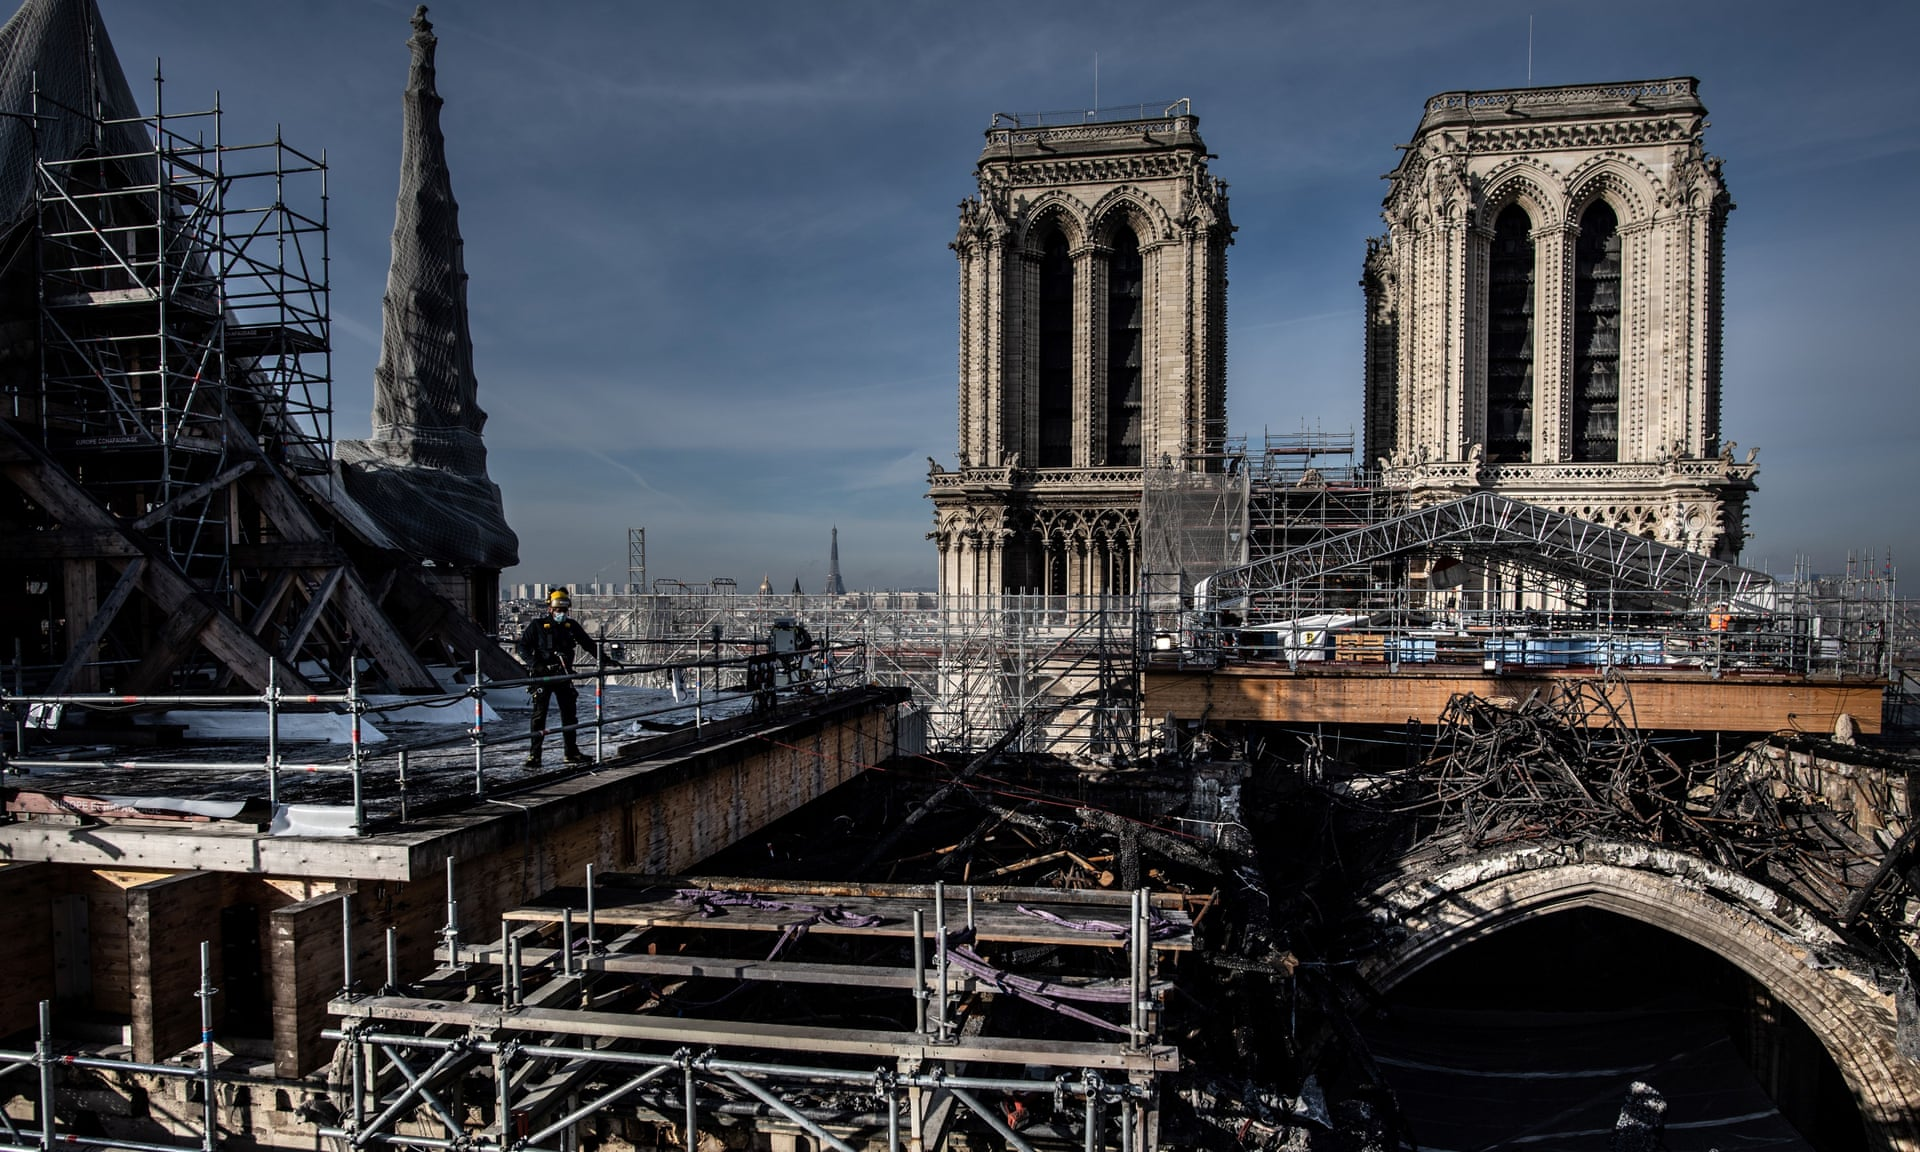 Workers on the roof of Notre Dame removing the burnt scaffolding that surrounded the spire